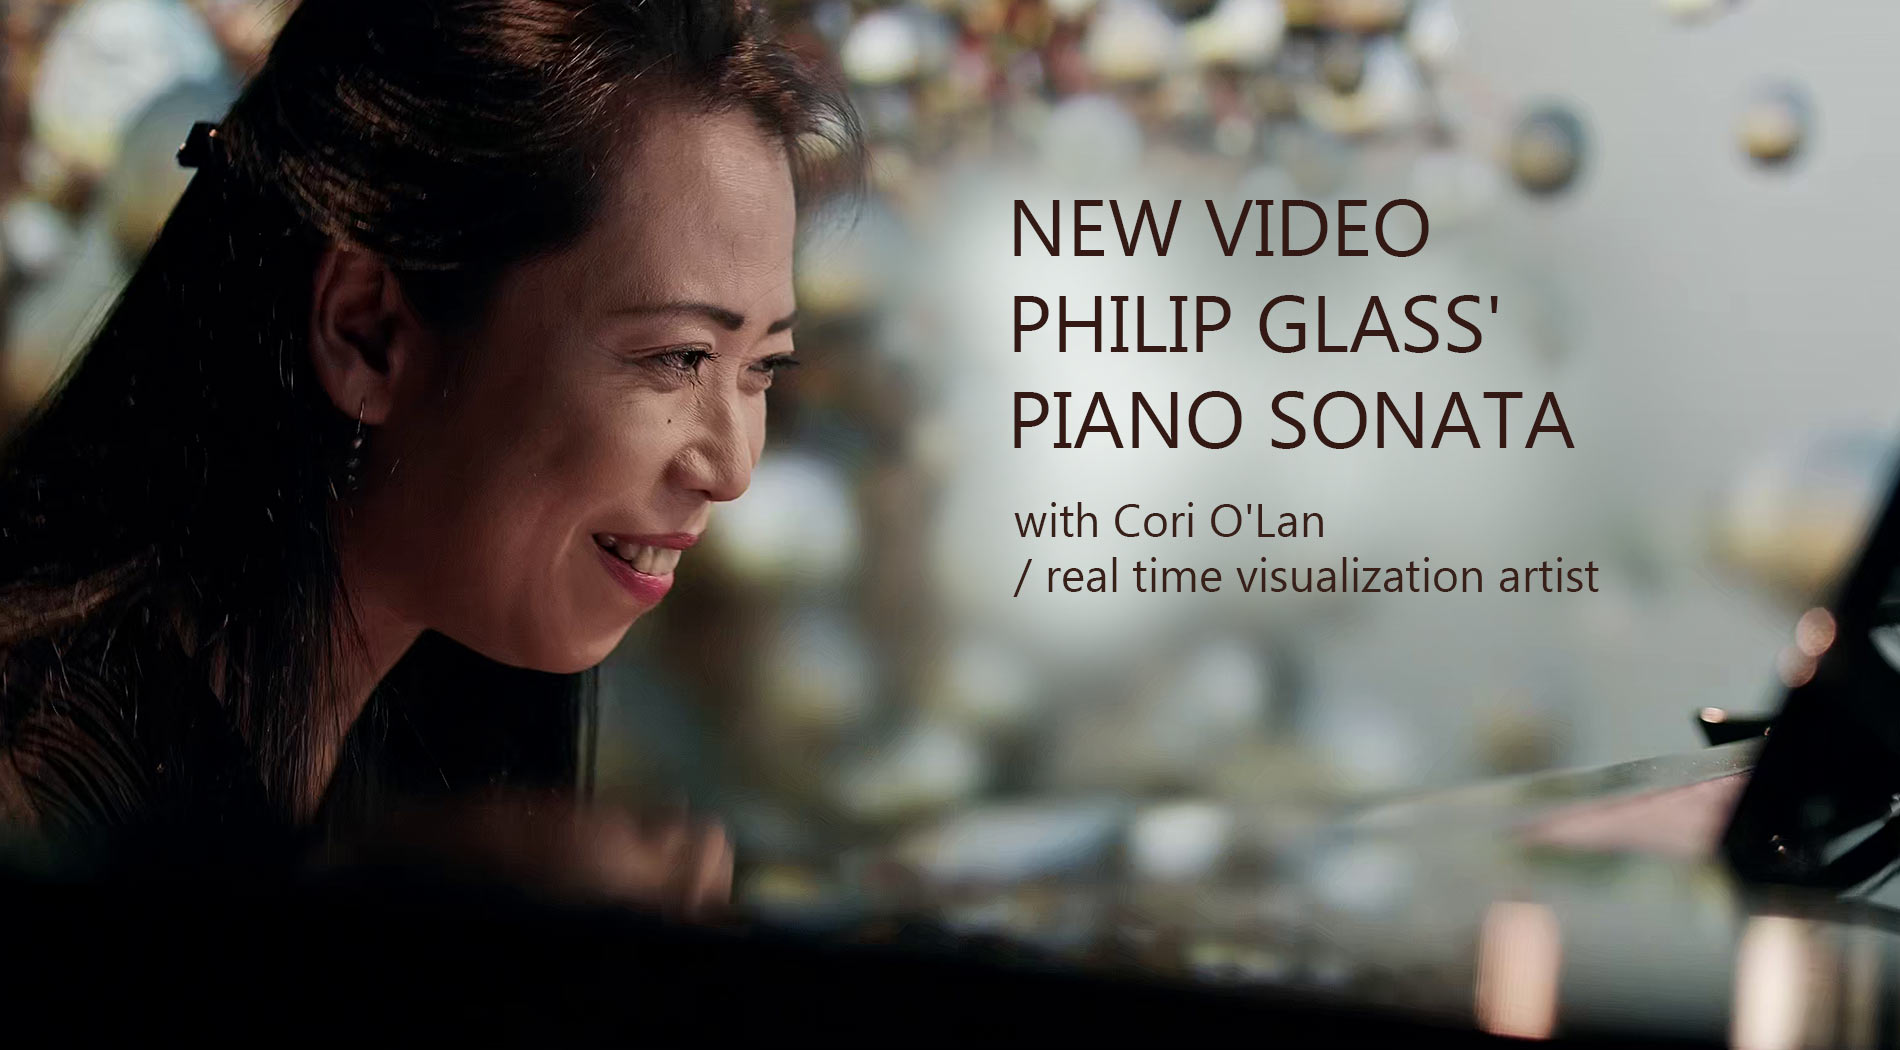 New Video Philip Glass' Piano Sonata